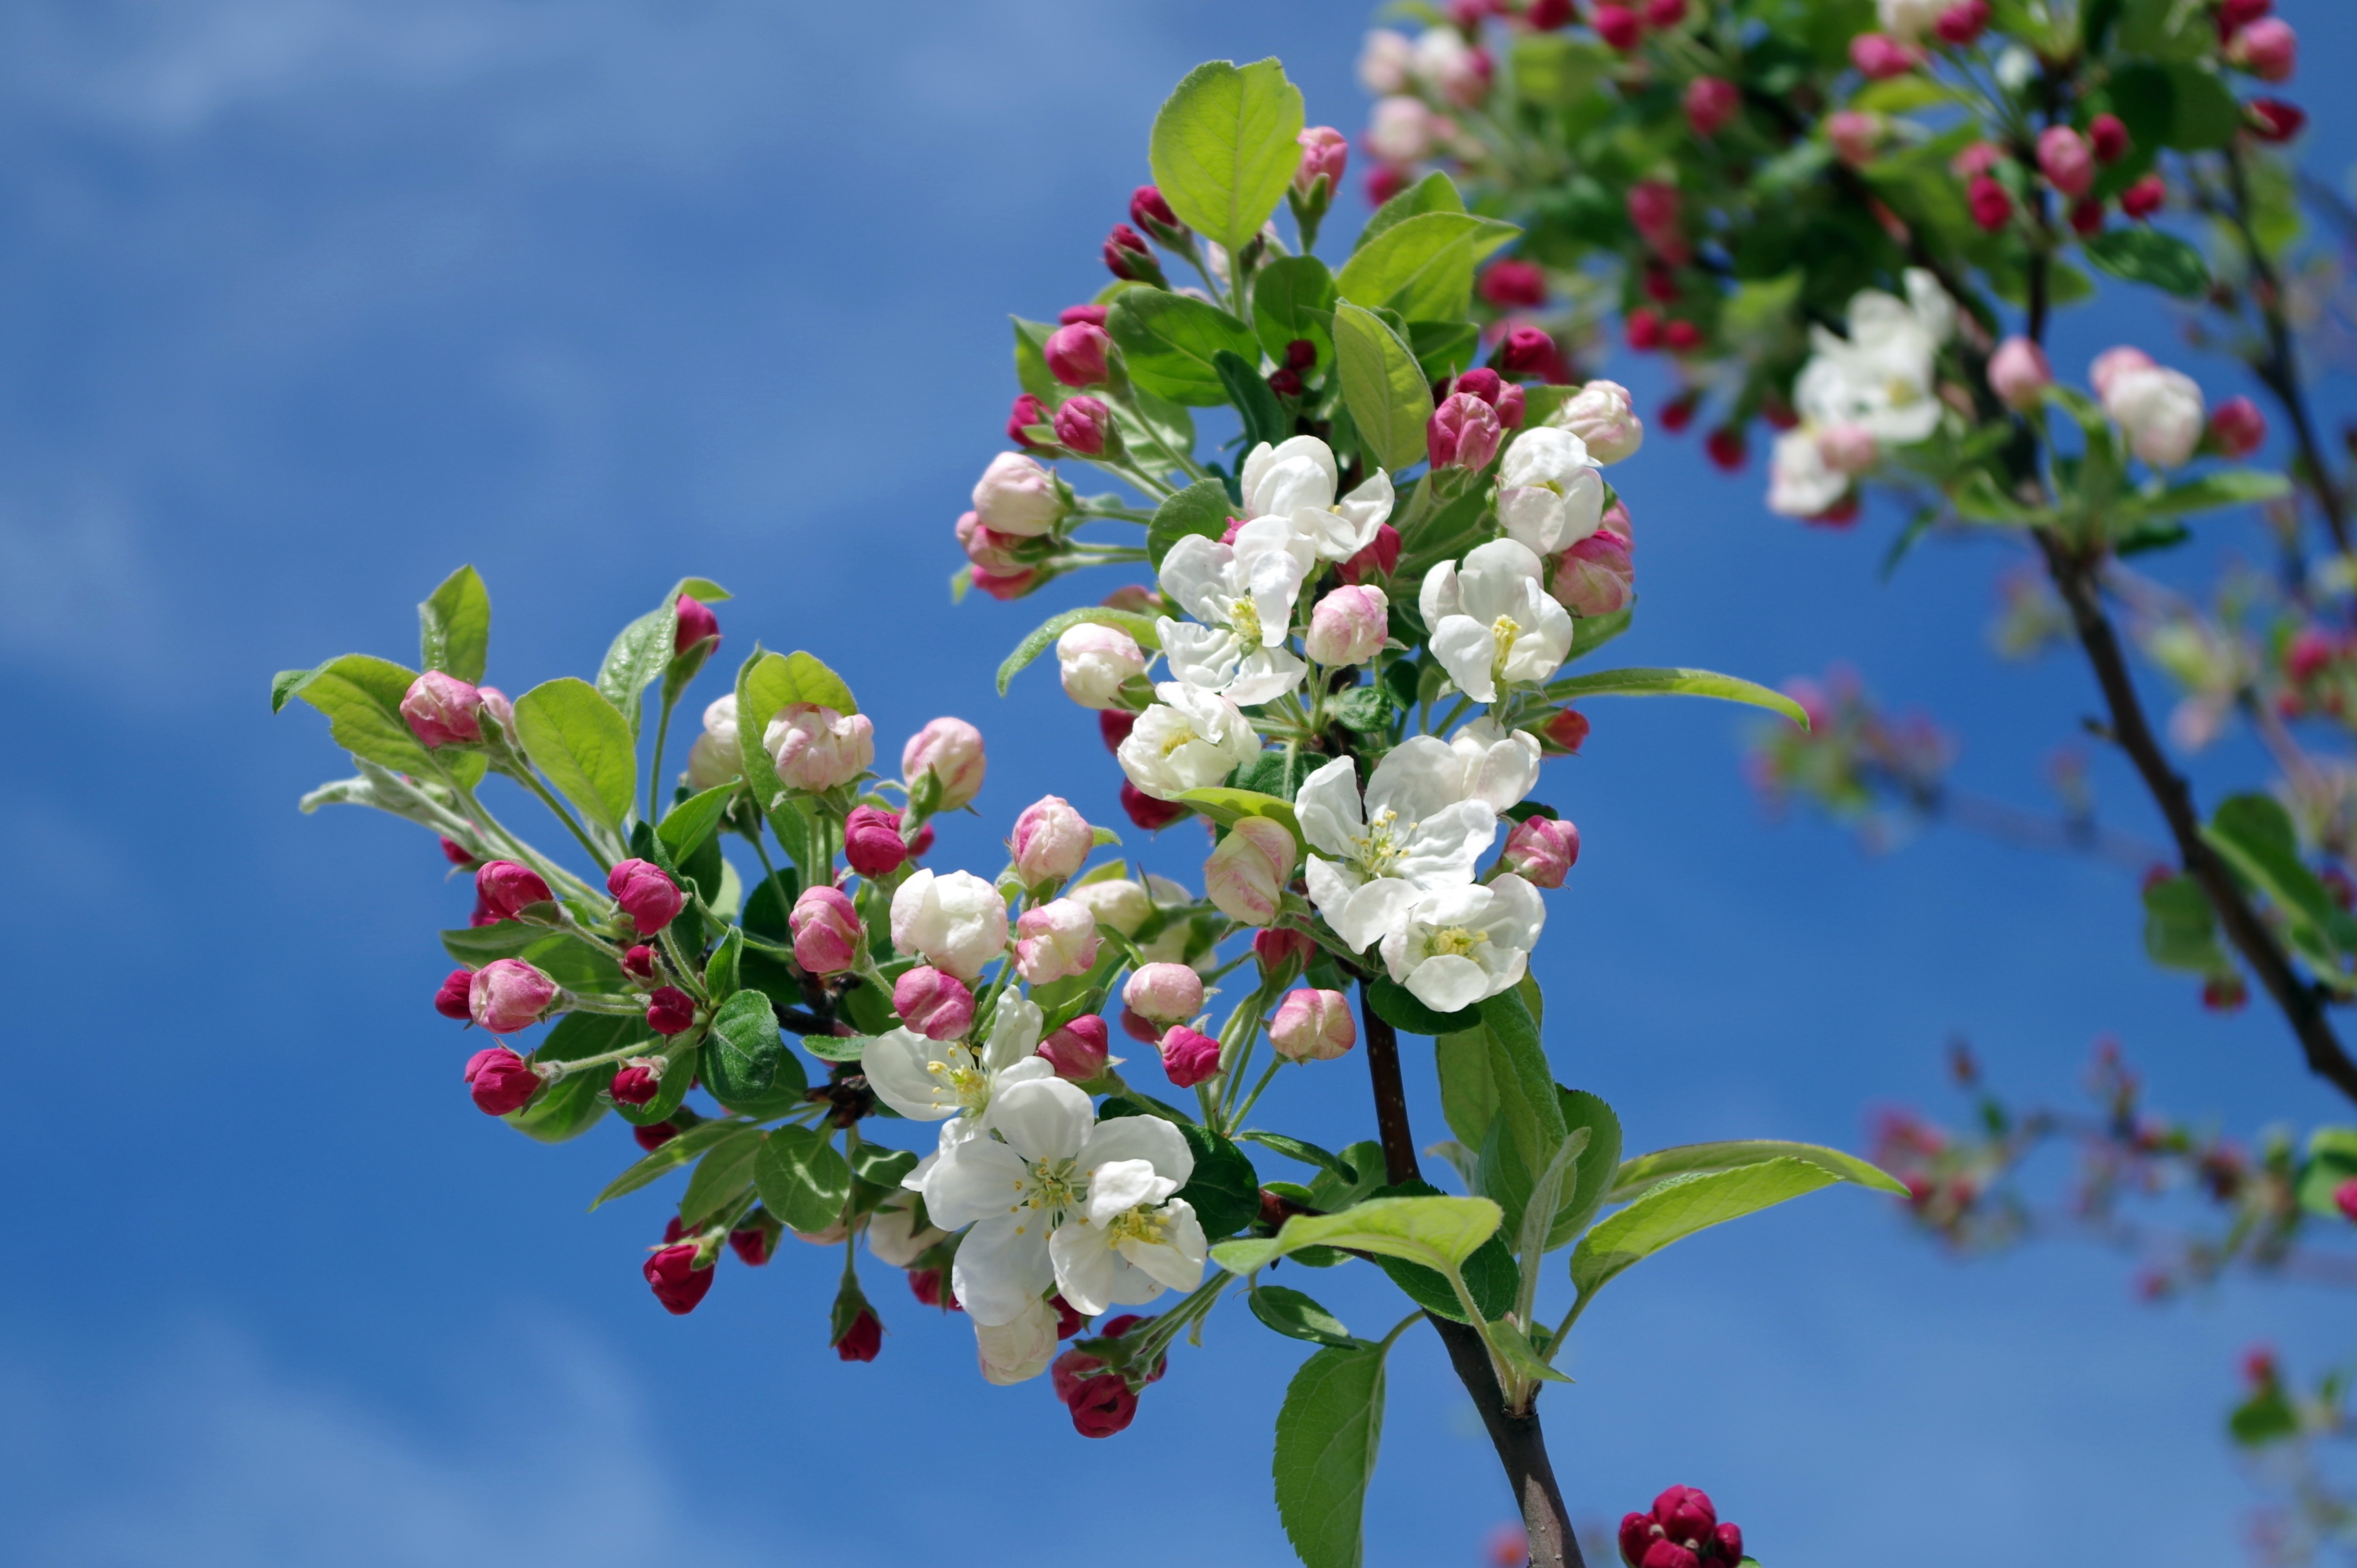 apple-blossom-tree-branch-spring-67286.jpeg (4906×3264)